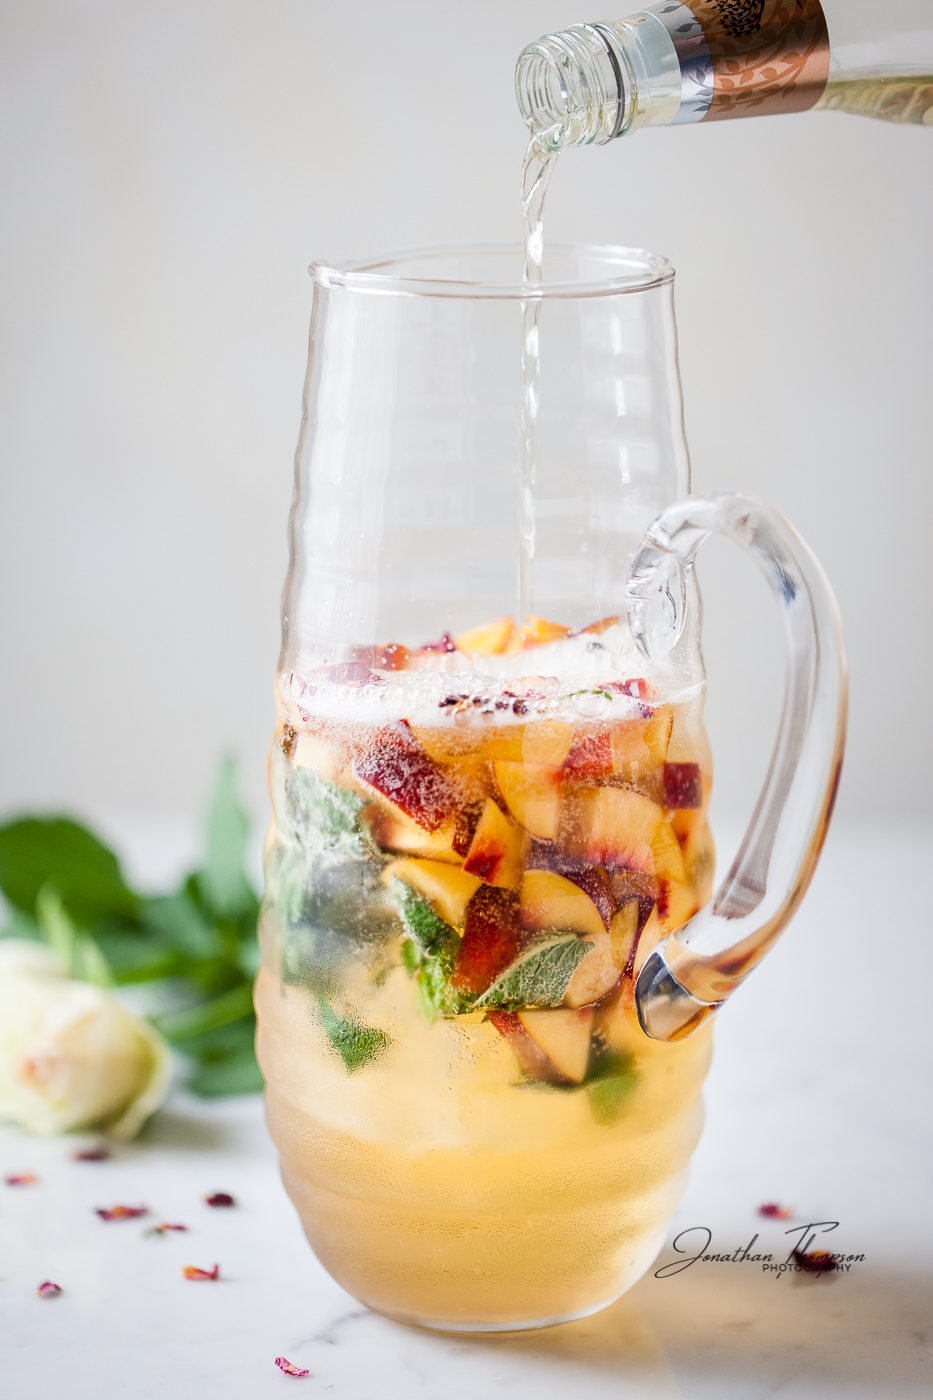 Clear liquid pouring into a glass jug containing fruit juice, fruit and mint